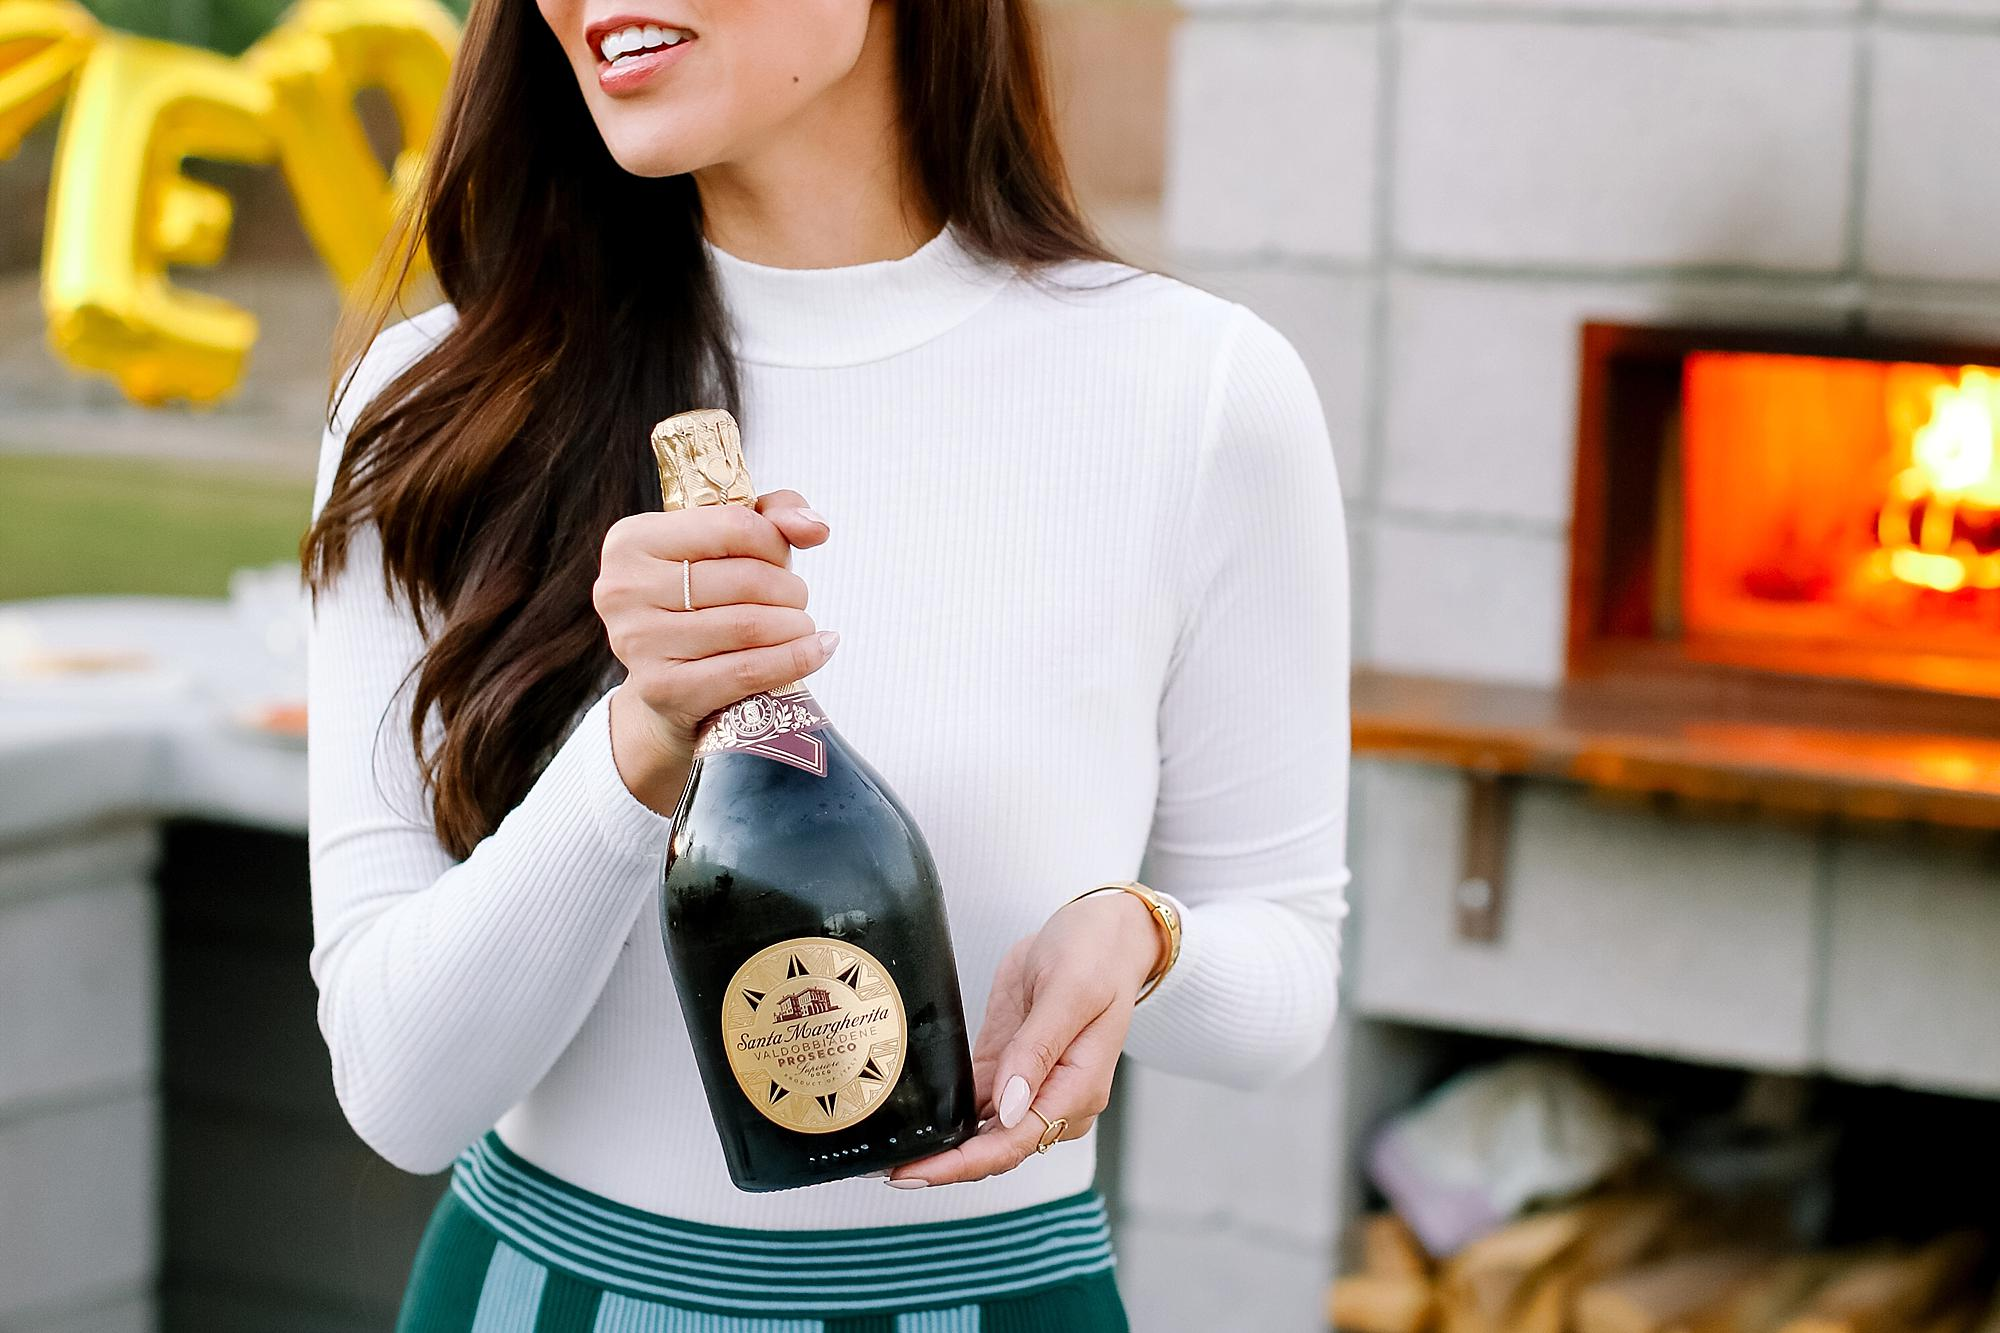 santa margherita prosecco superiore set by mylar alphabet balloons and the an outdoor pizza fireplace lifestyle blogger Diana Elizabeth in phoenix arizona holding Santa margherita